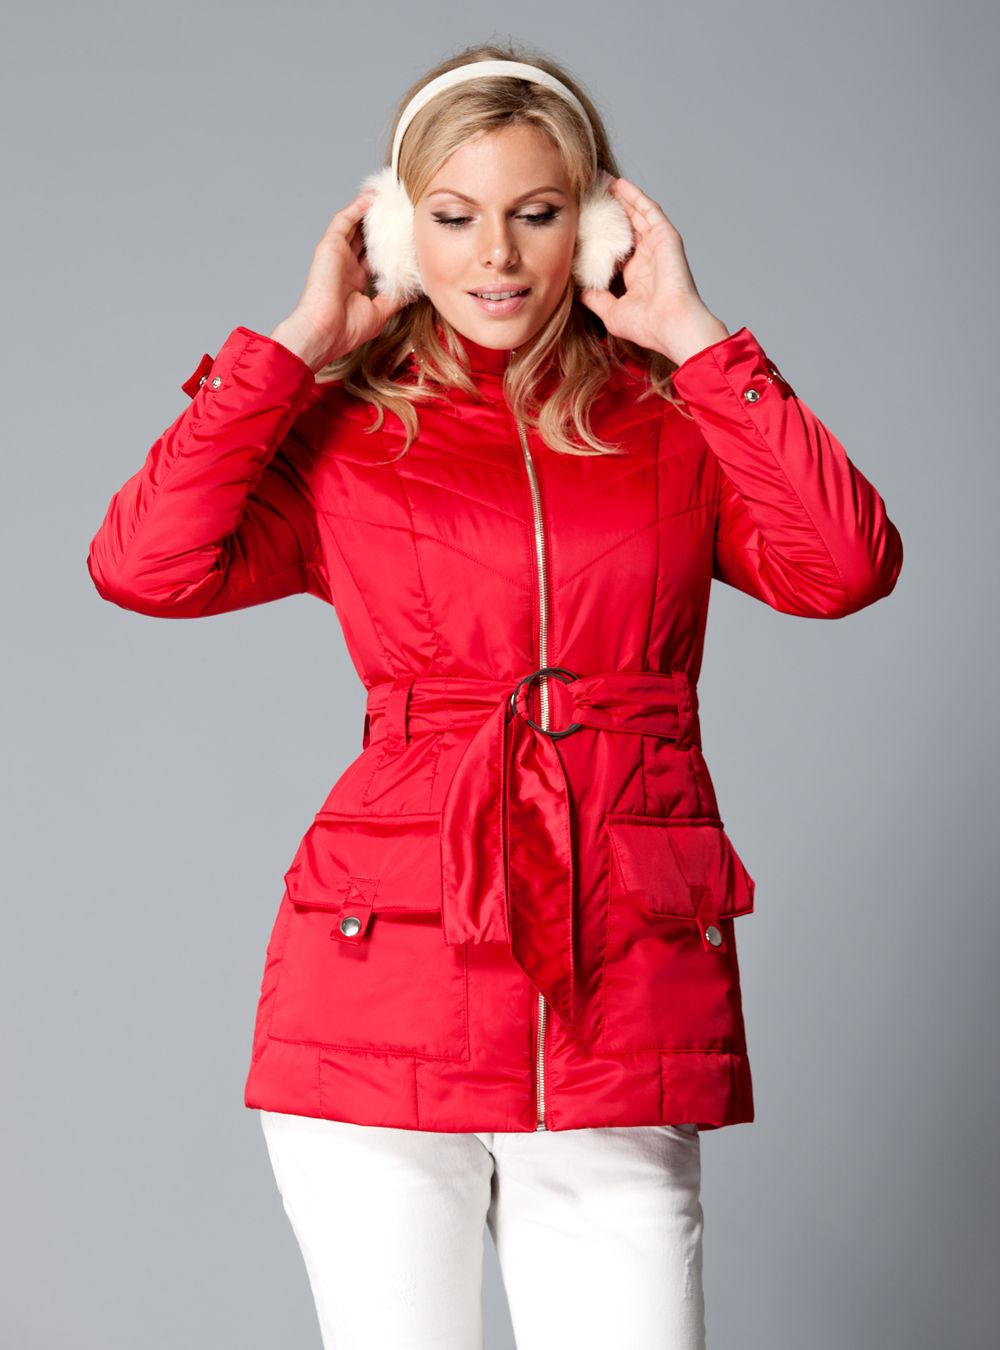 Siberia jacket in red | Clothing for big breasts | DD Atelier http://dd-atelier.com/Coats/